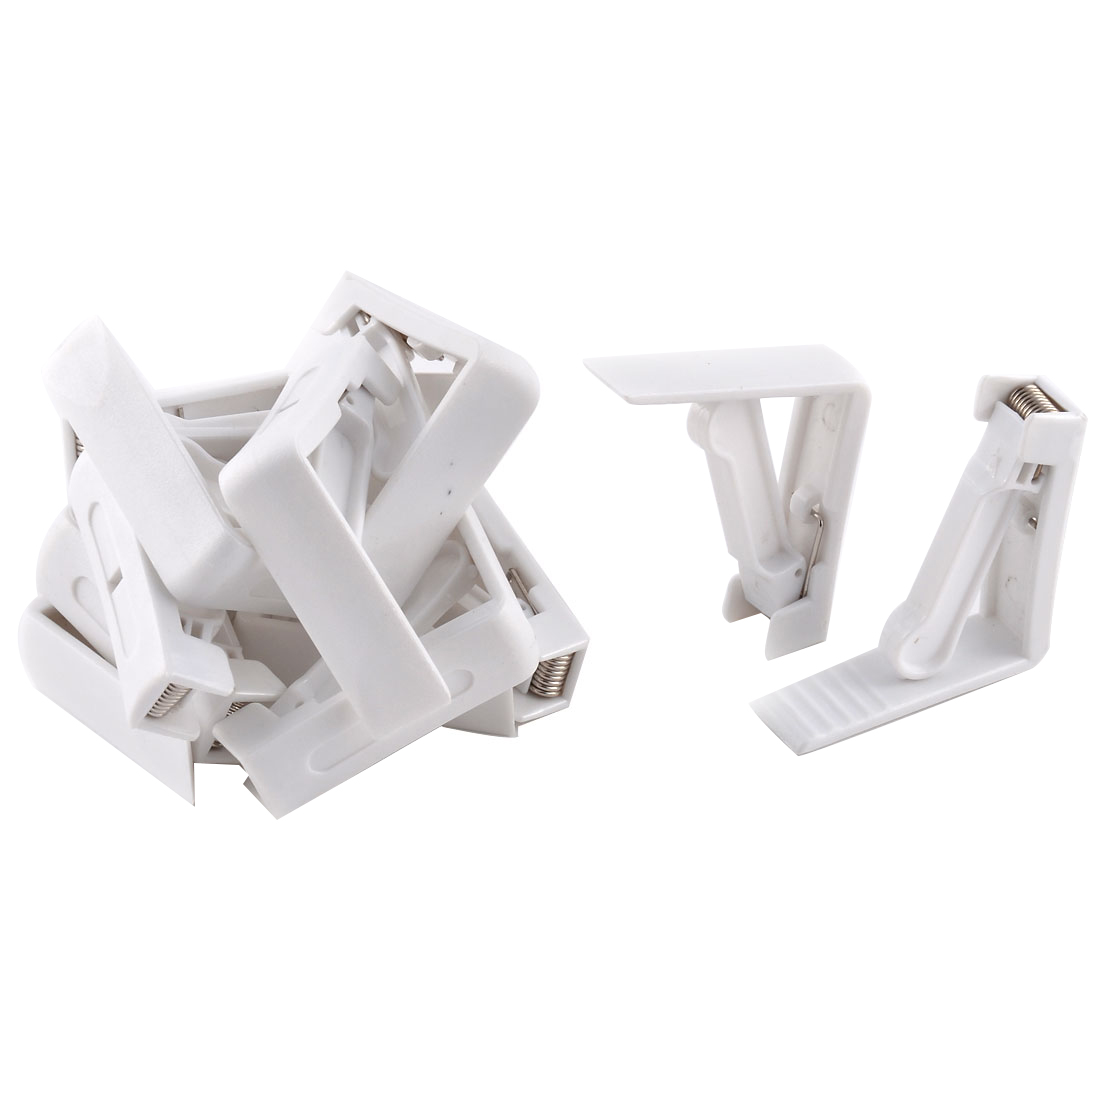 Home Party Wedding Banquet Plastic Table Cloth Holder Clip Clamp White 12 Pcs